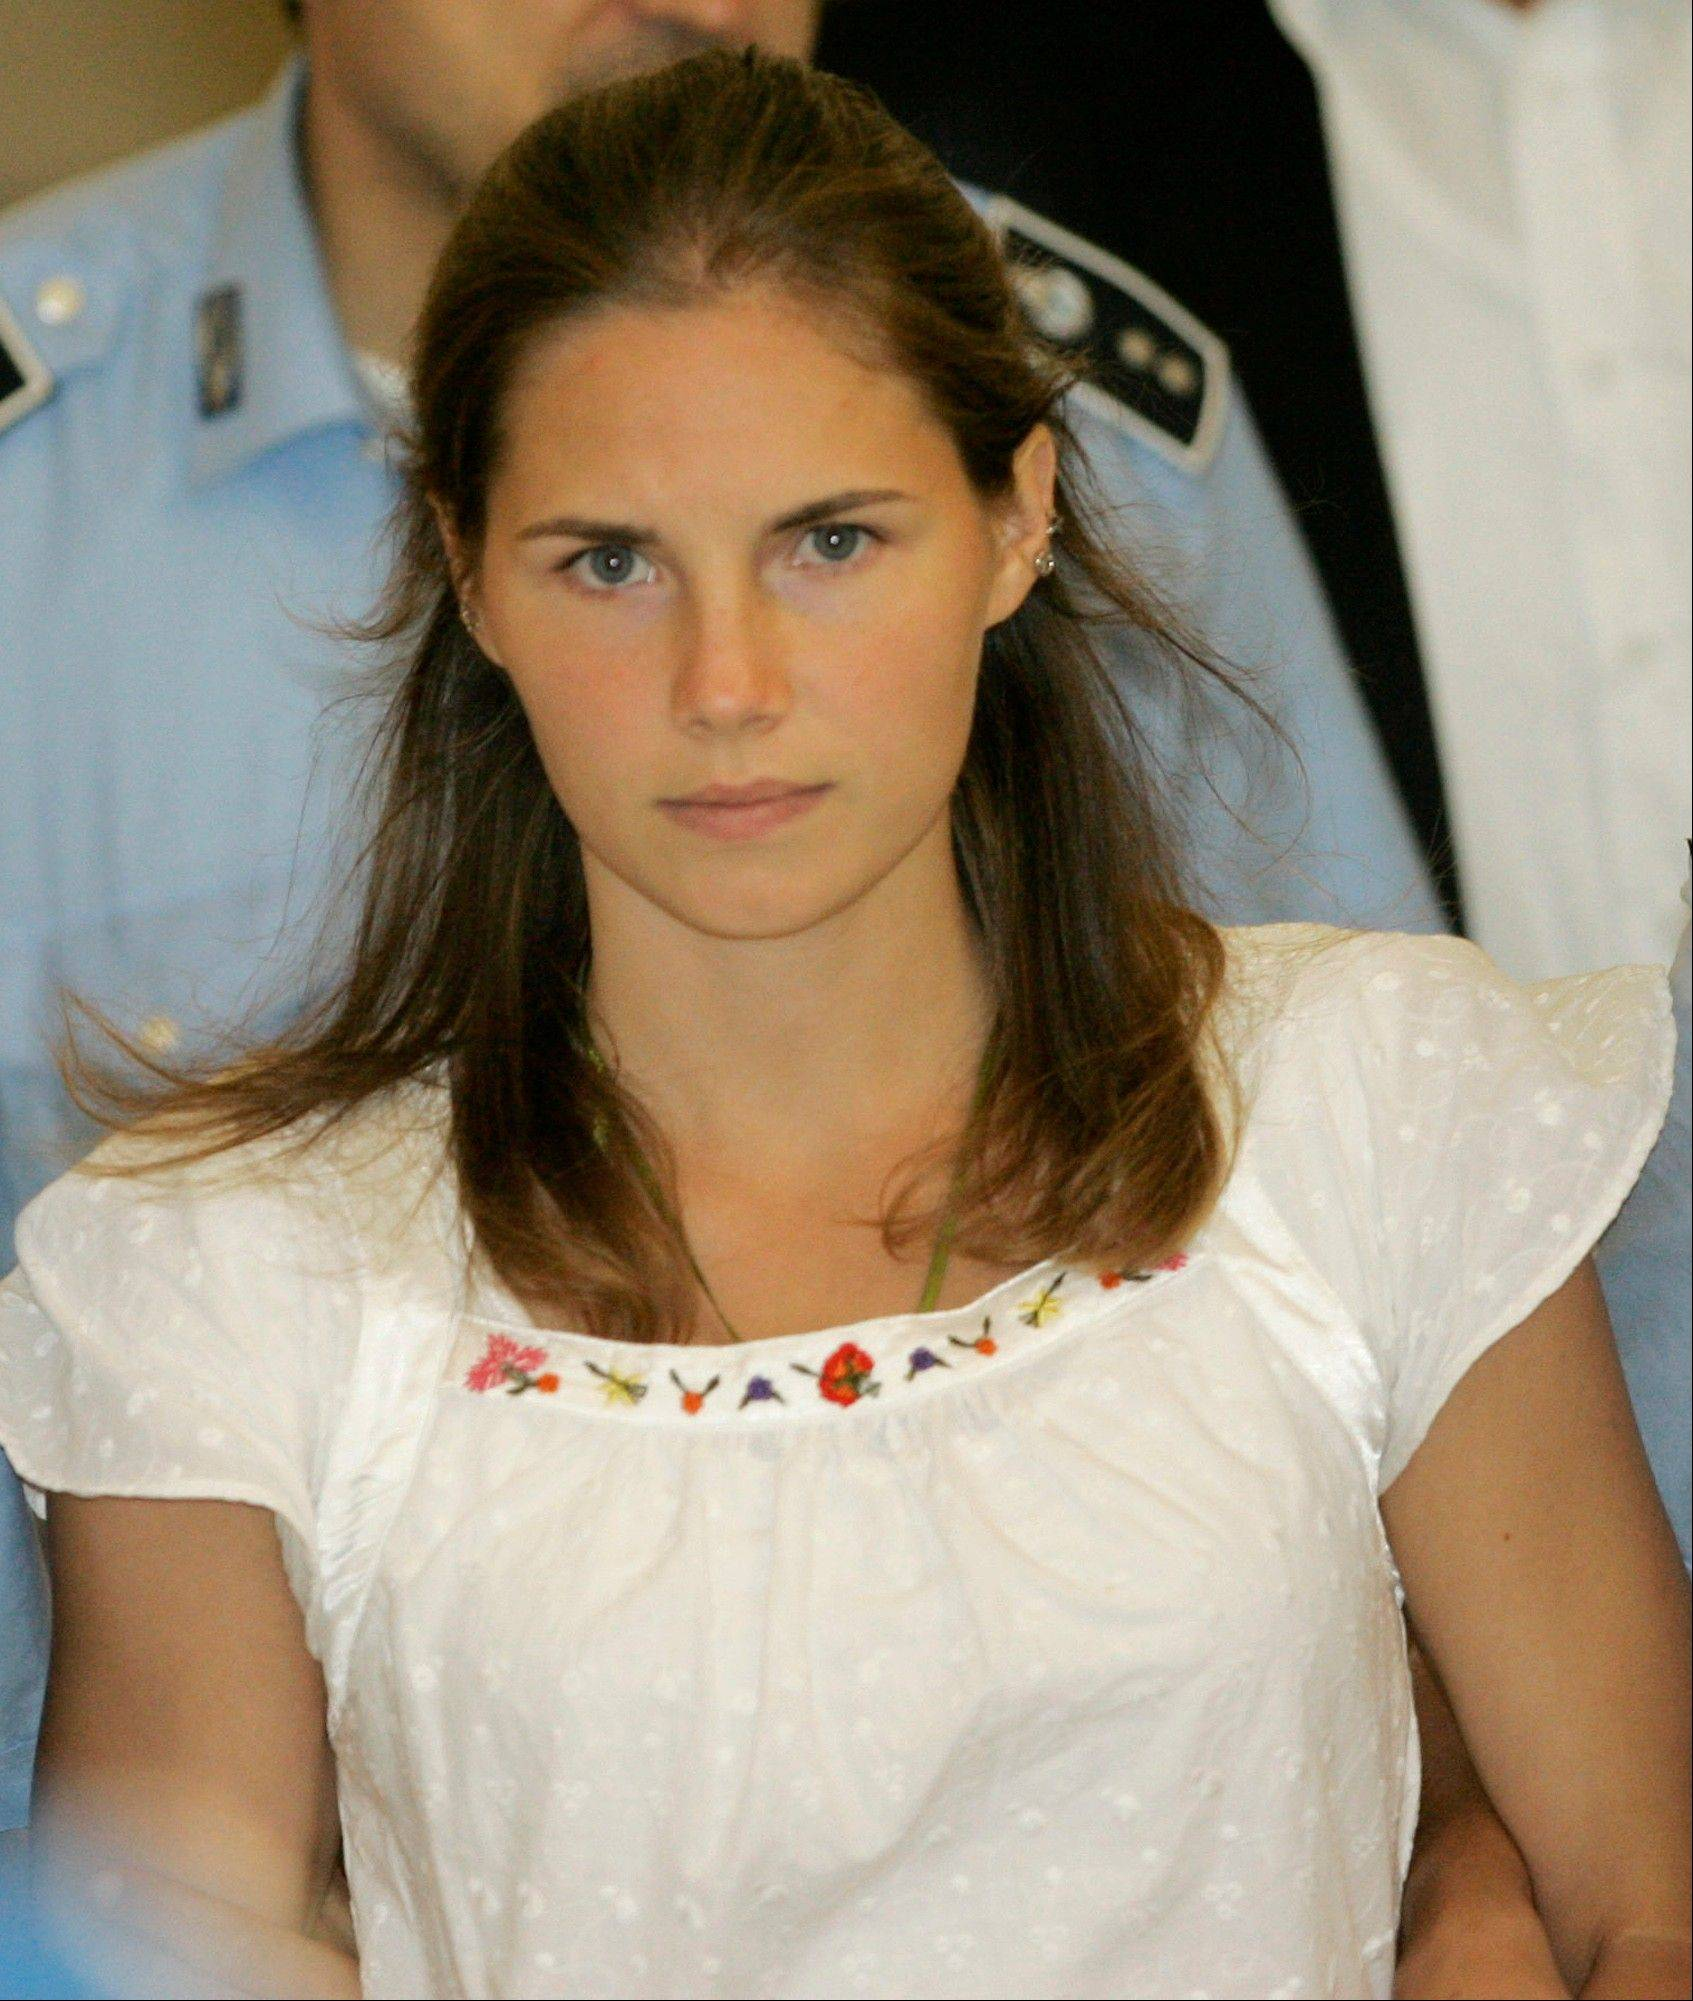 Amanda Knox is to hear on Tuesday whether she will face trial again as Italy�s top criminal court considered whether to overturn her acquittal in the murder of her roommate in Italy.